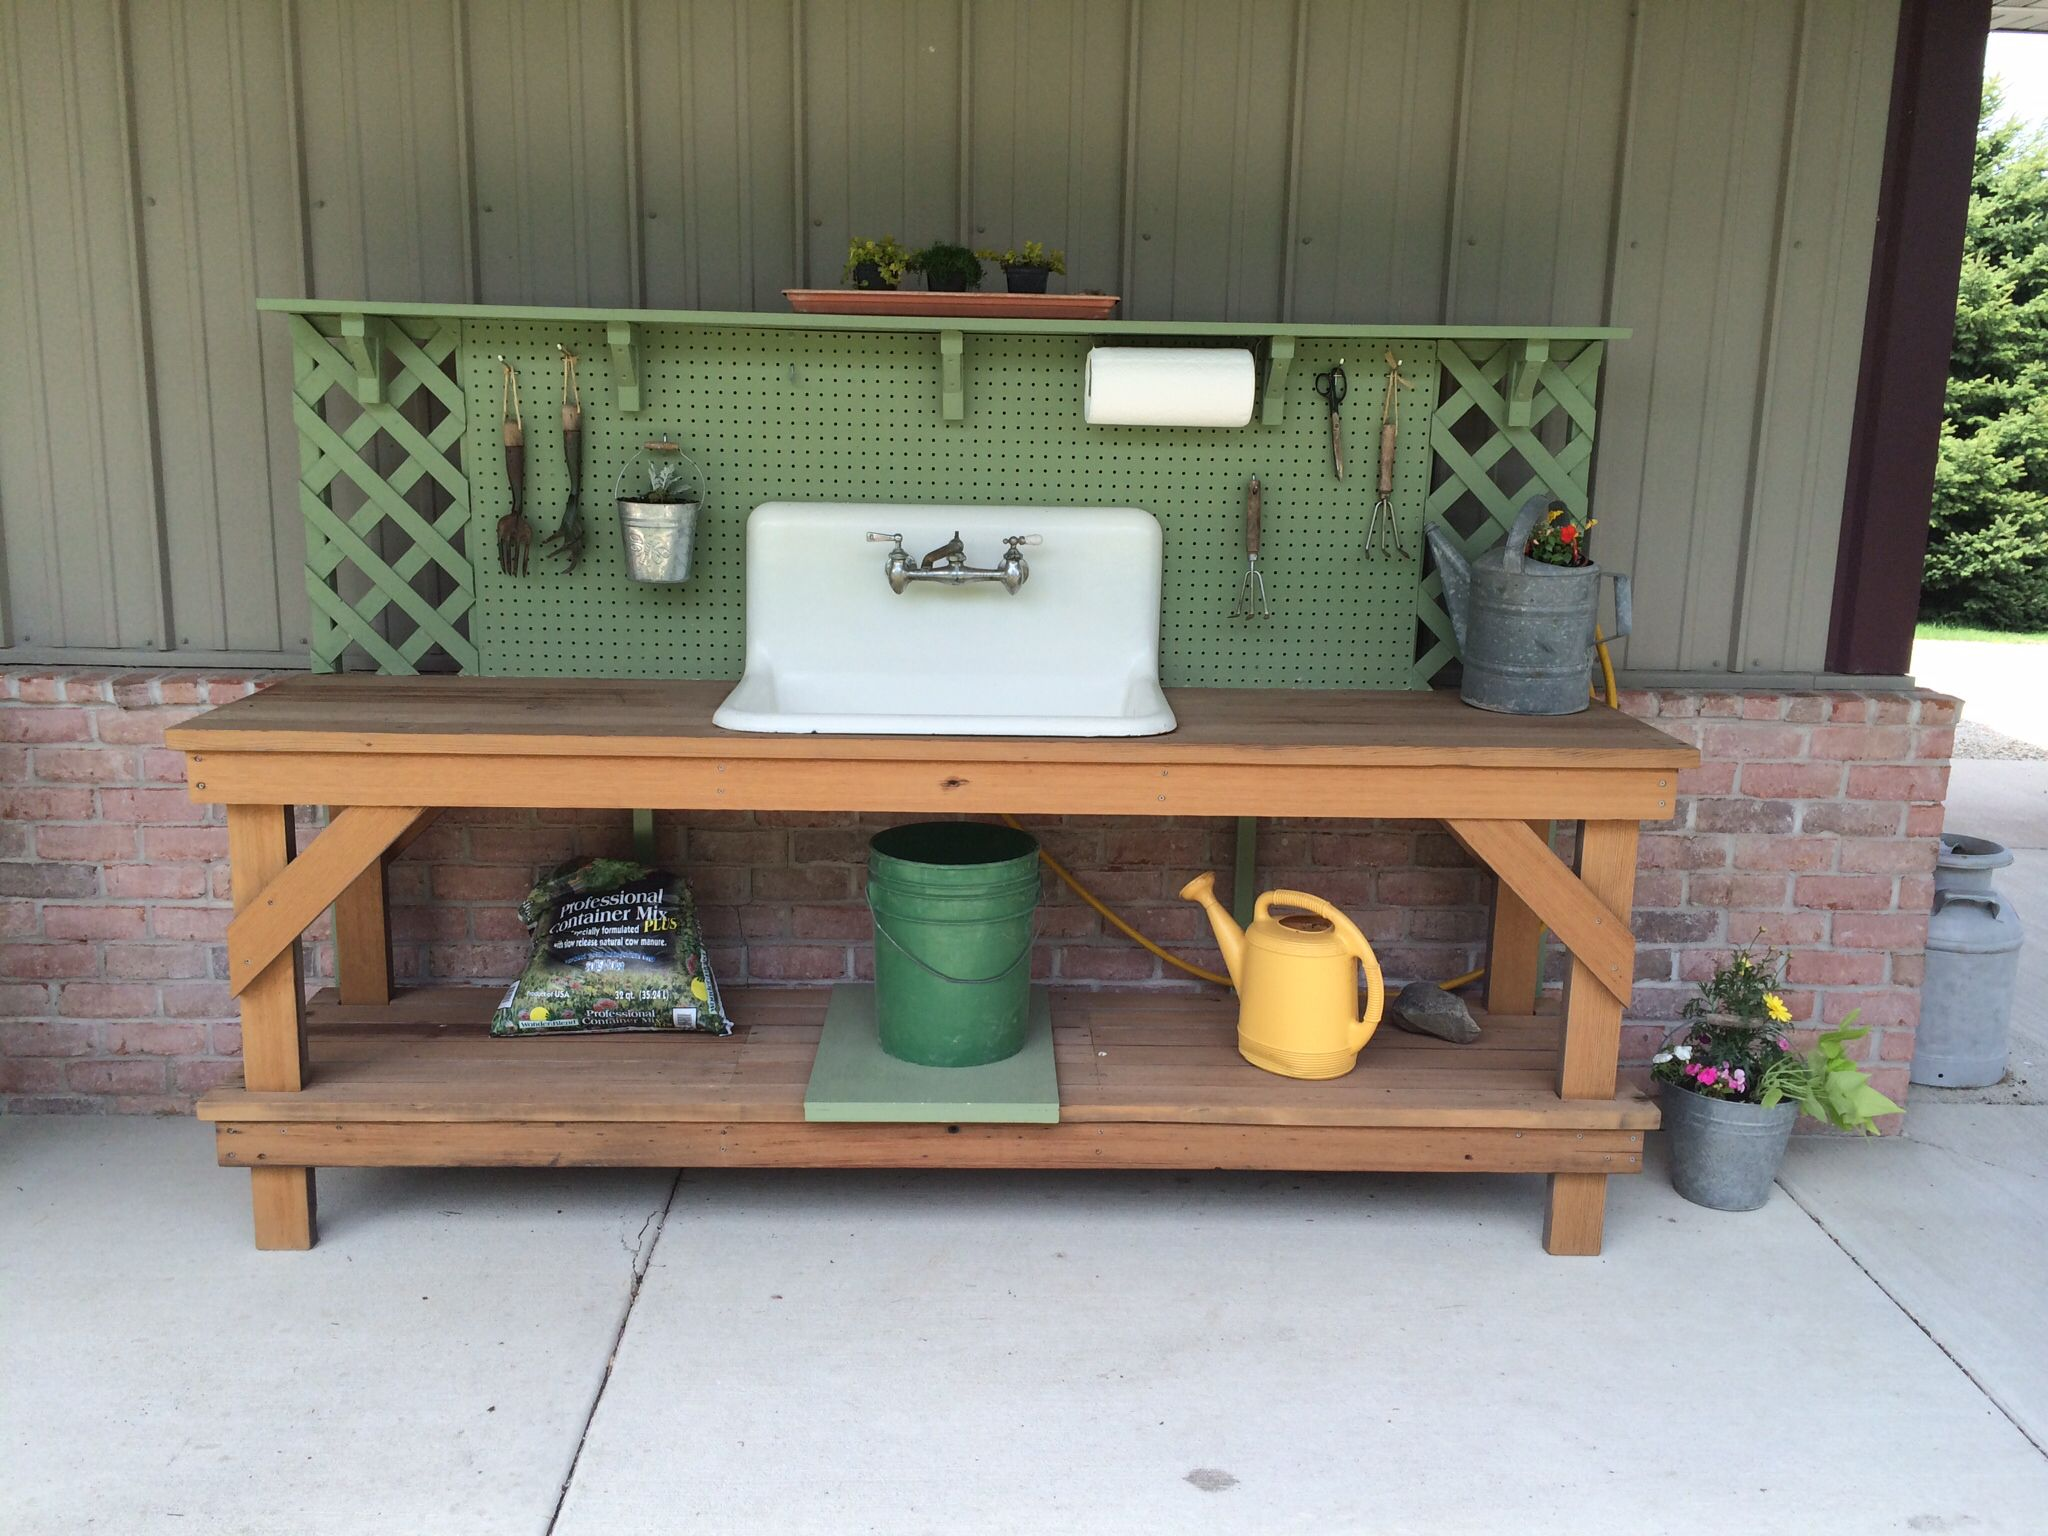 Potting Bench With Cast Iron Sink Constructed From Repurposed